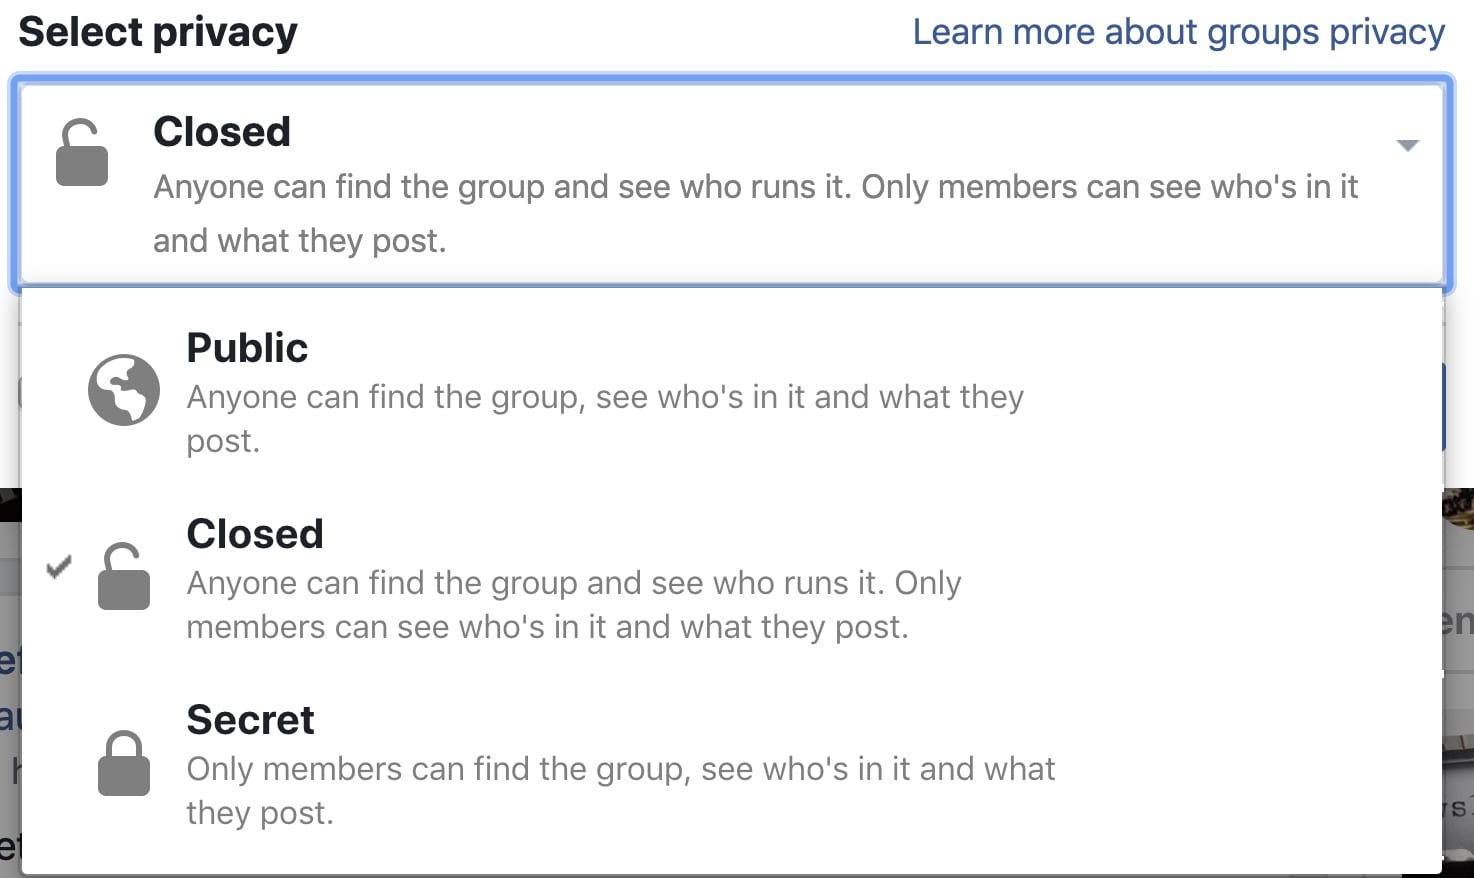 A list of privacy options for your facebook group include closed: anyone can find the group and see who runs it but onlin members can see what's being posted.   Public means anyone can find the group, who runs it, and what's posted.   Secret groups are unlisted and only members can find the group, see who's in the group and what is posted.